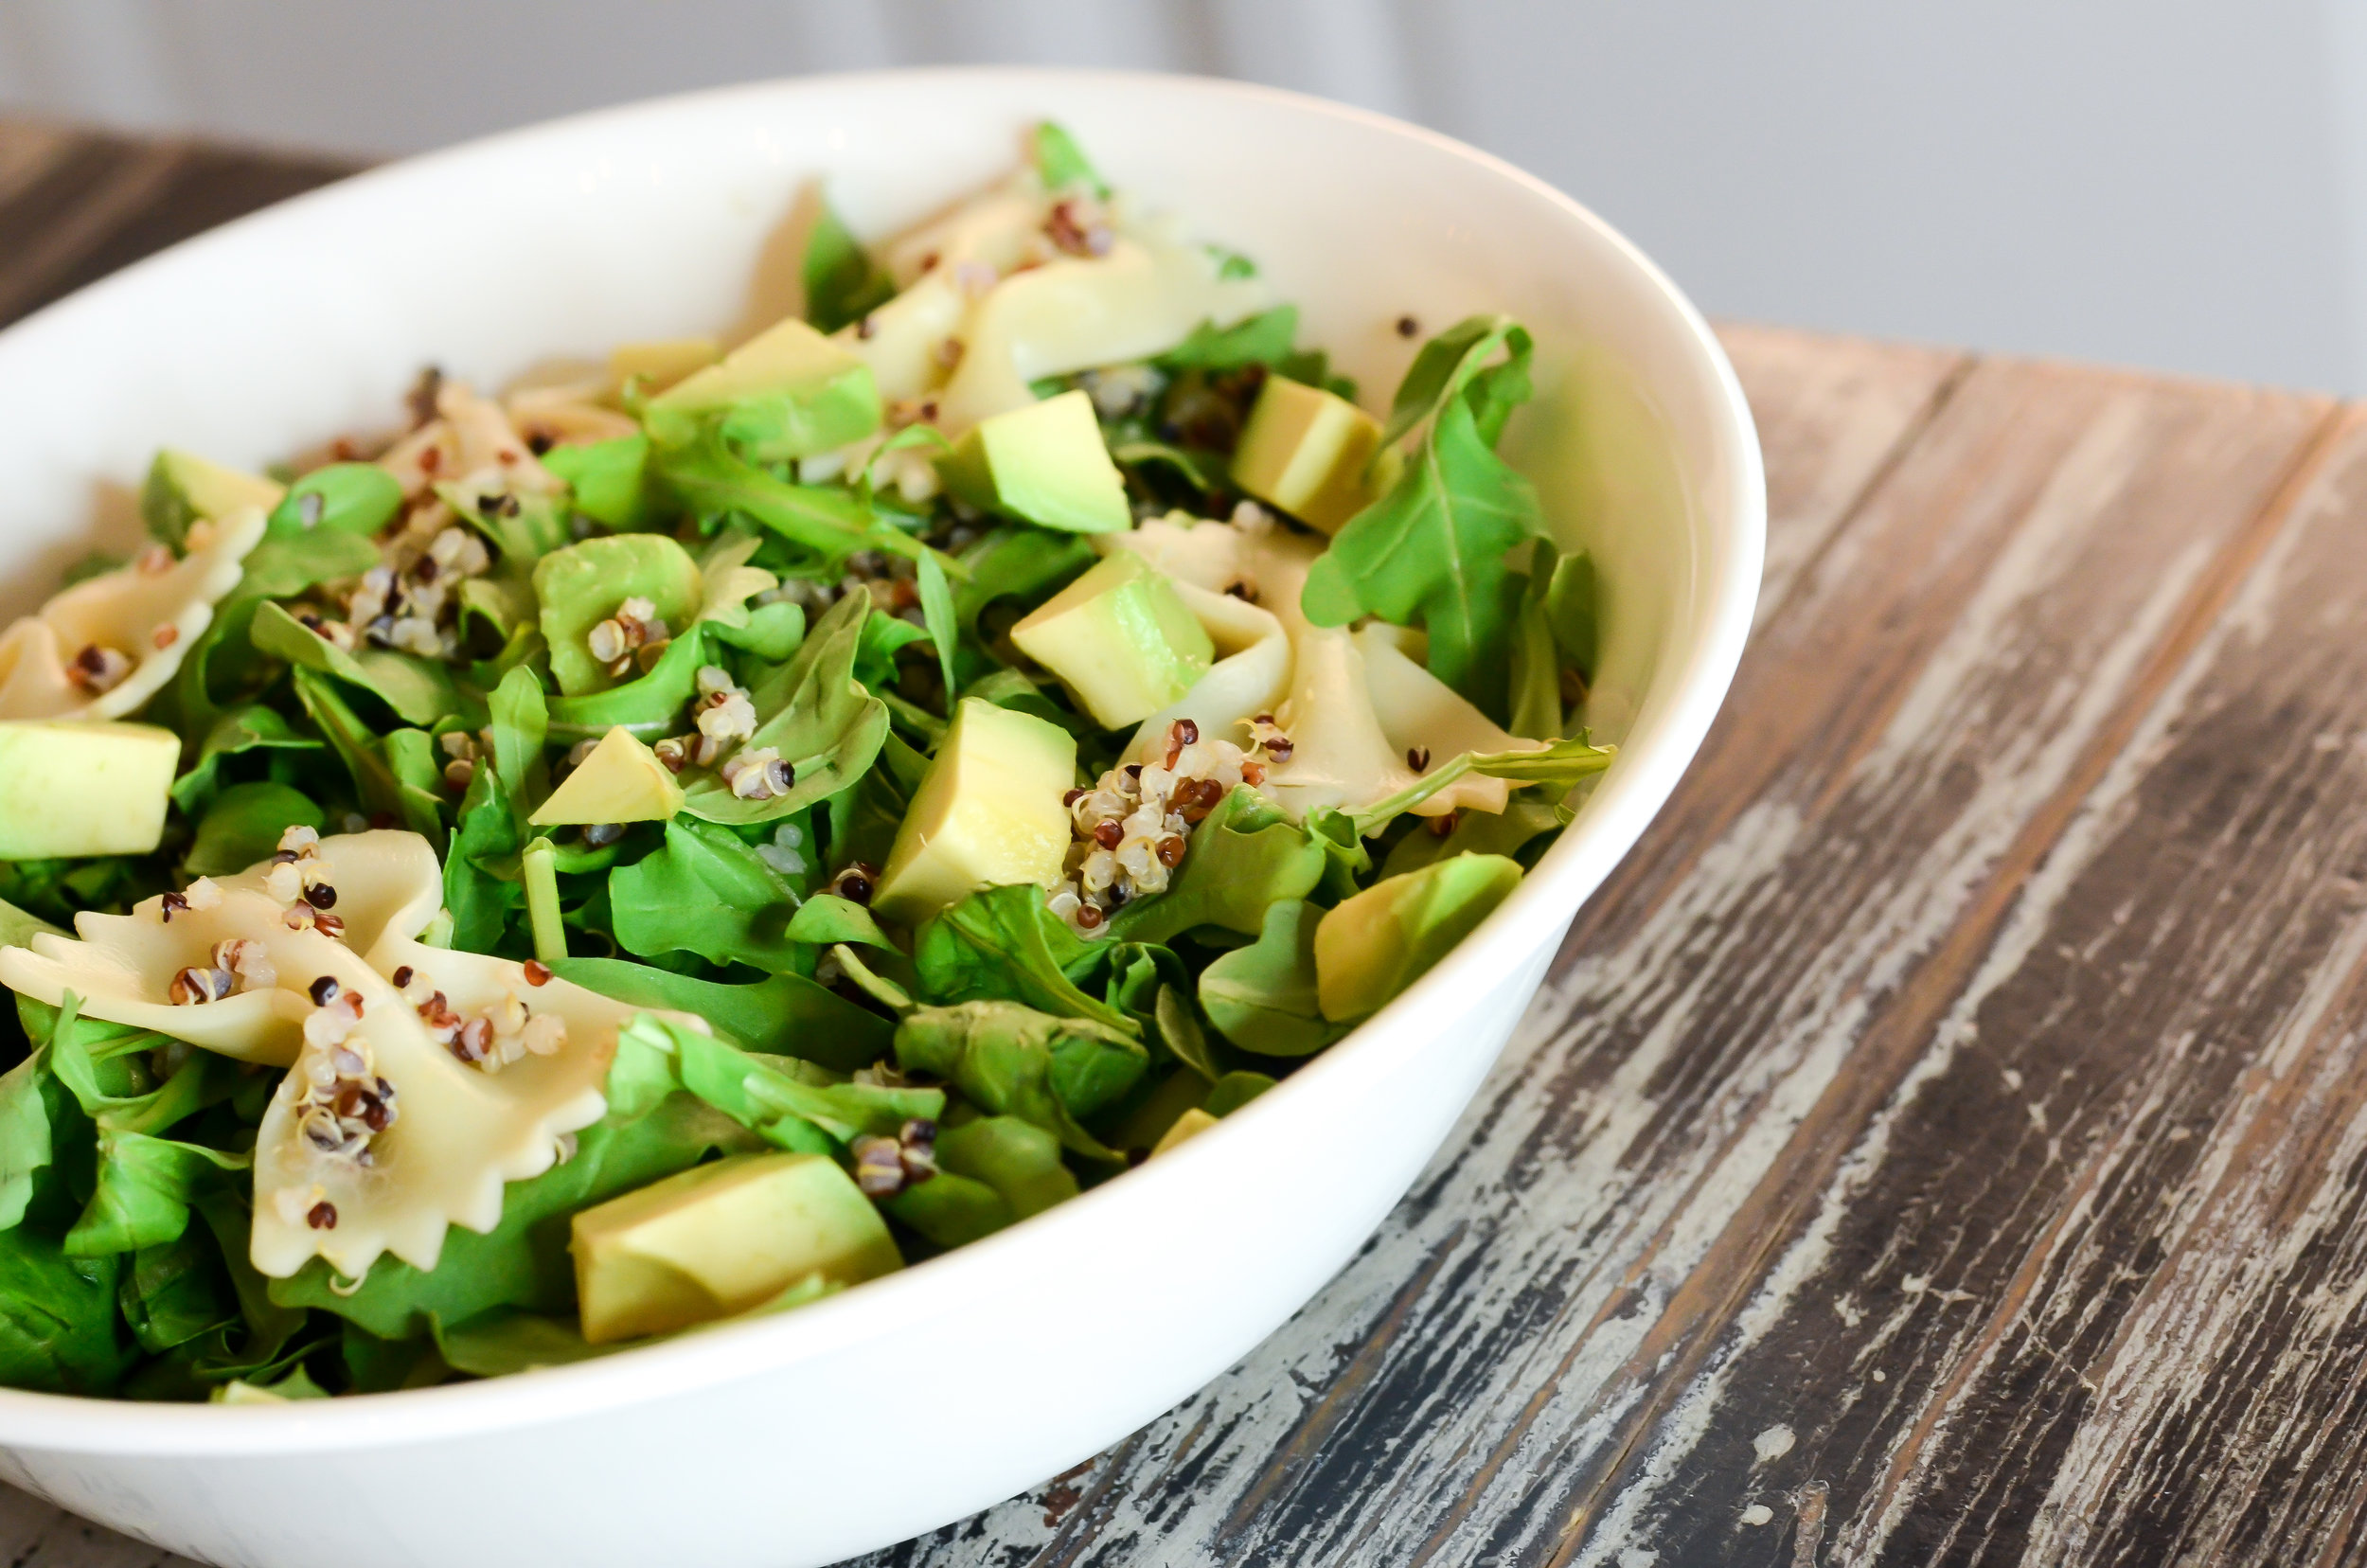 TeriyakiSalad Recipe - Ingredients:- 1-2 cups of kale, spinach, or lettuce (washed)- 1/4 cup of pasta noodles, cooked- 1/2 avocado, diced- 1/2 cup of quinoa, cooked- Missmisschelle's salad dressing (recipe shown below)- Optional: Salmon, Chicken, etc.